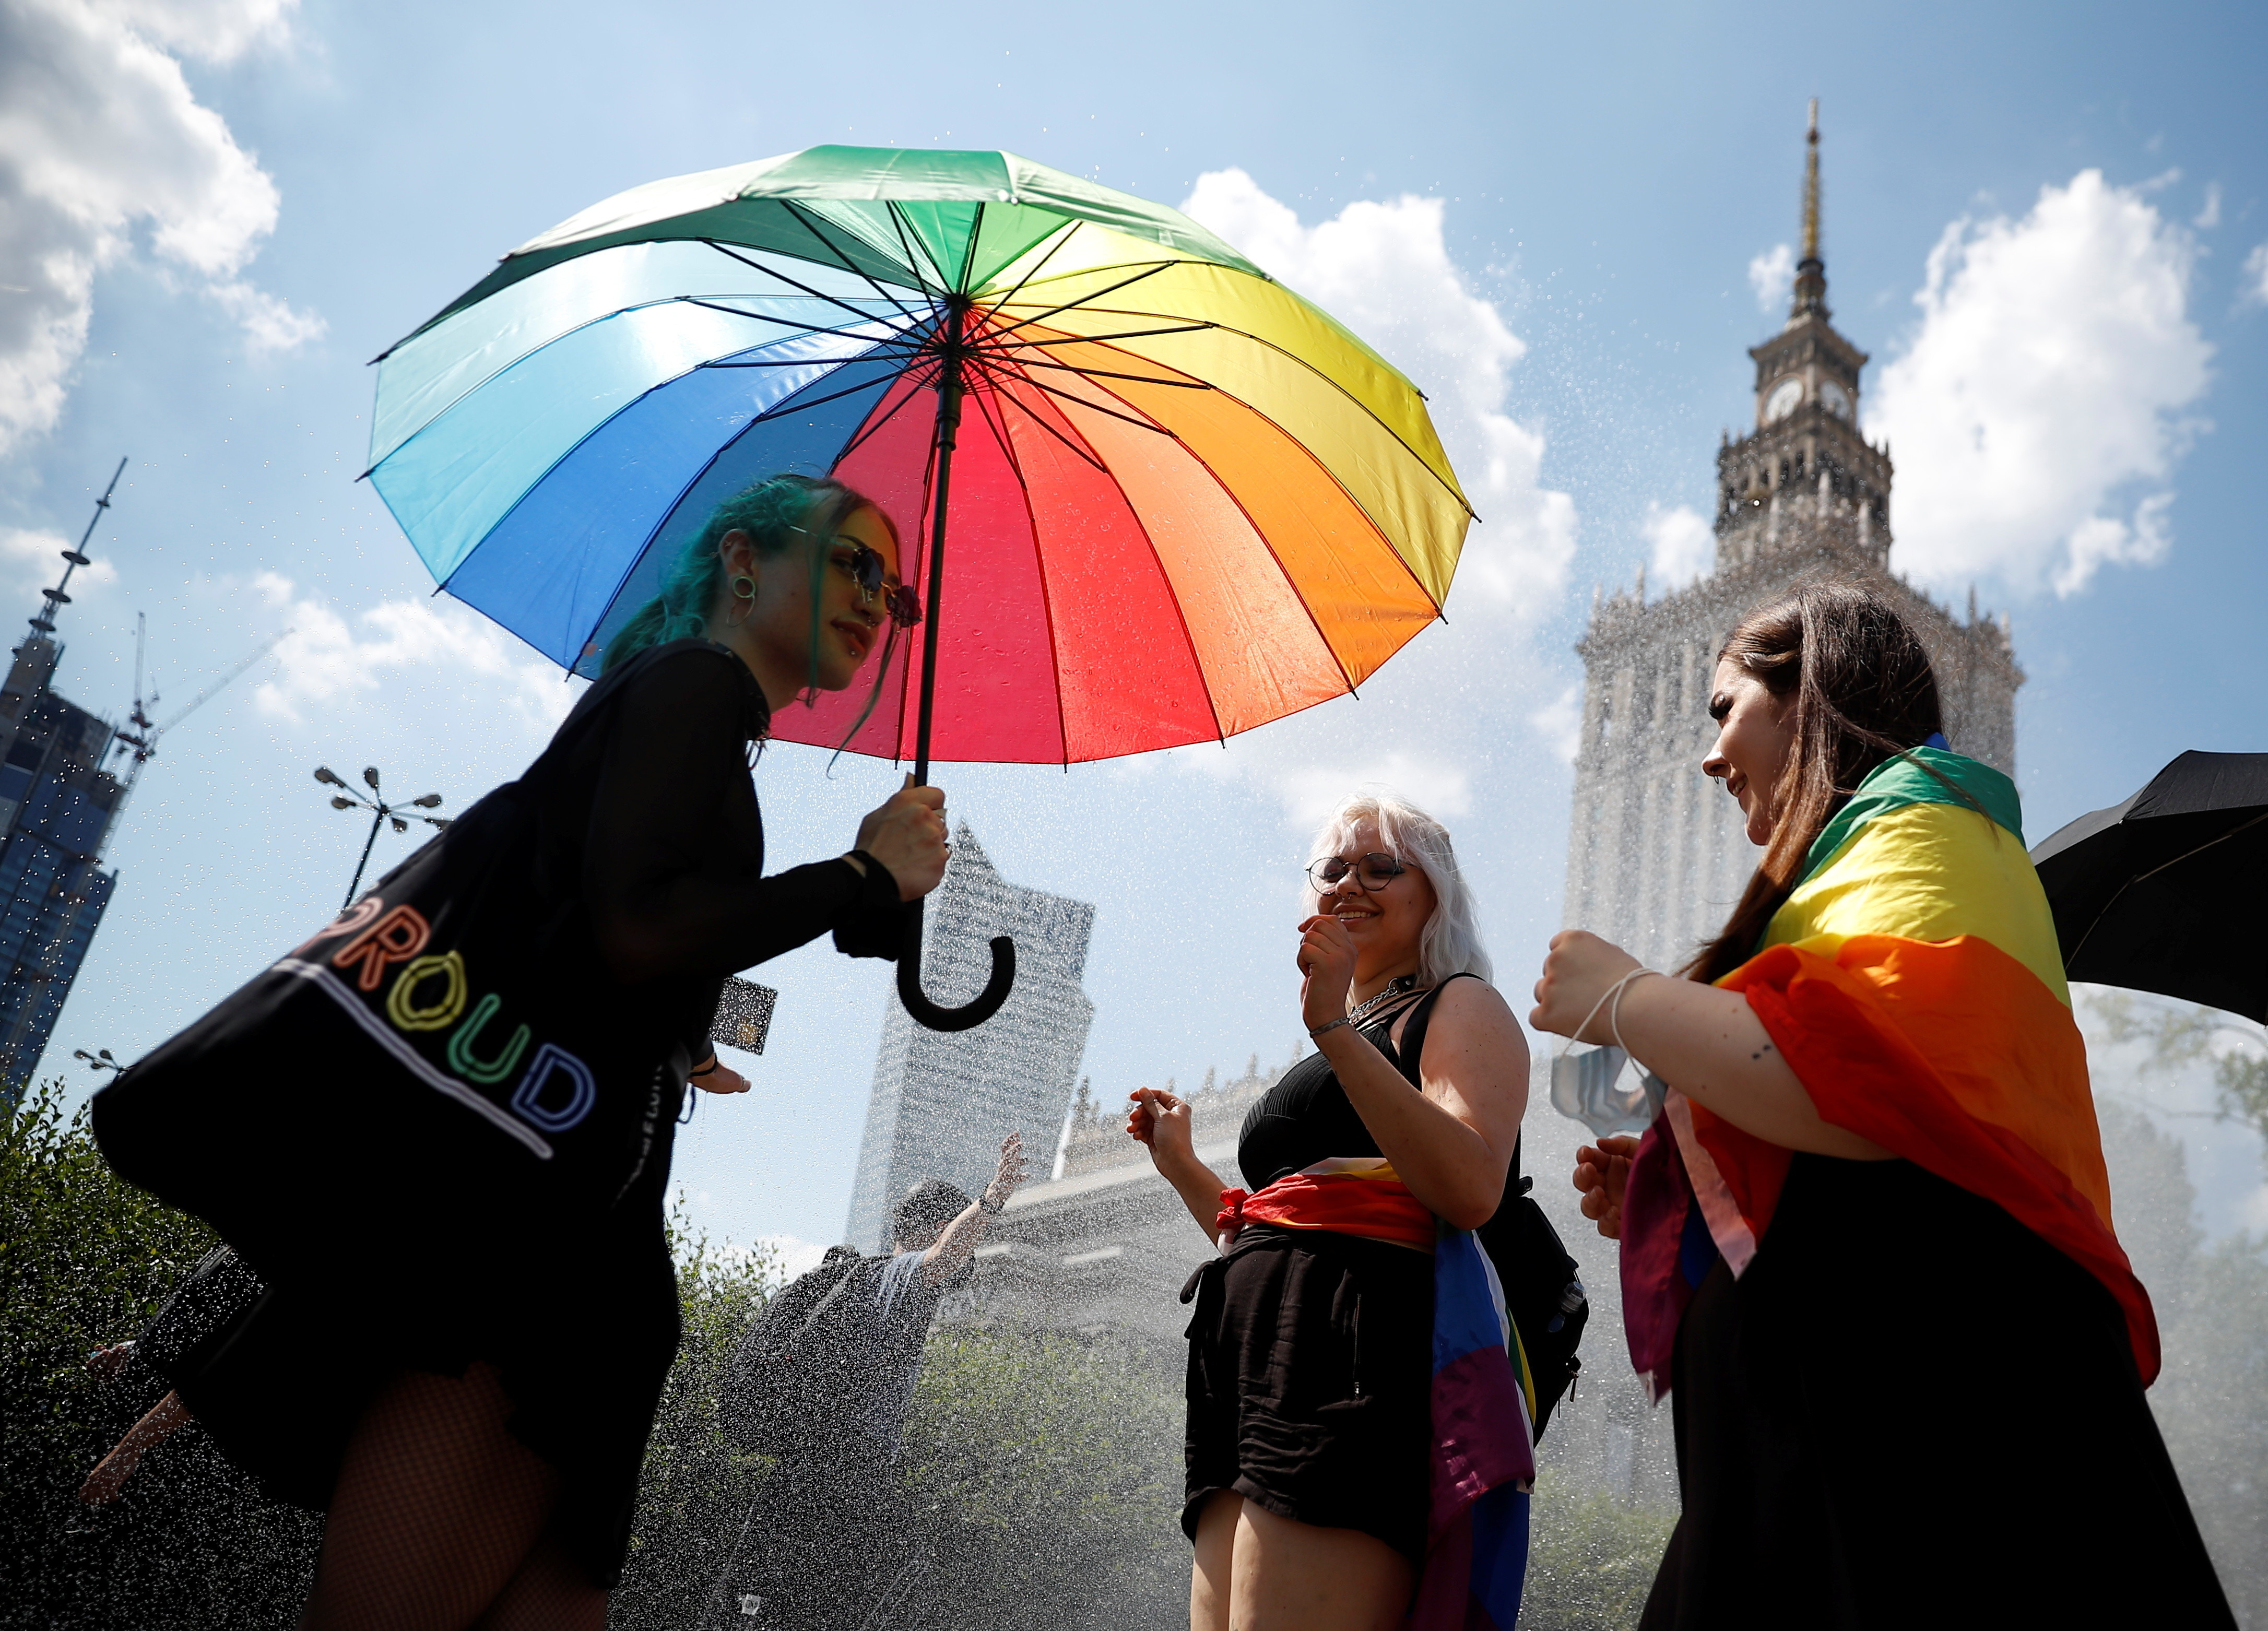 """People gather for the """"Equality Parade"""" rally in support of the LGBT community with multicoloured umbrellas, glasses and other accessories"""